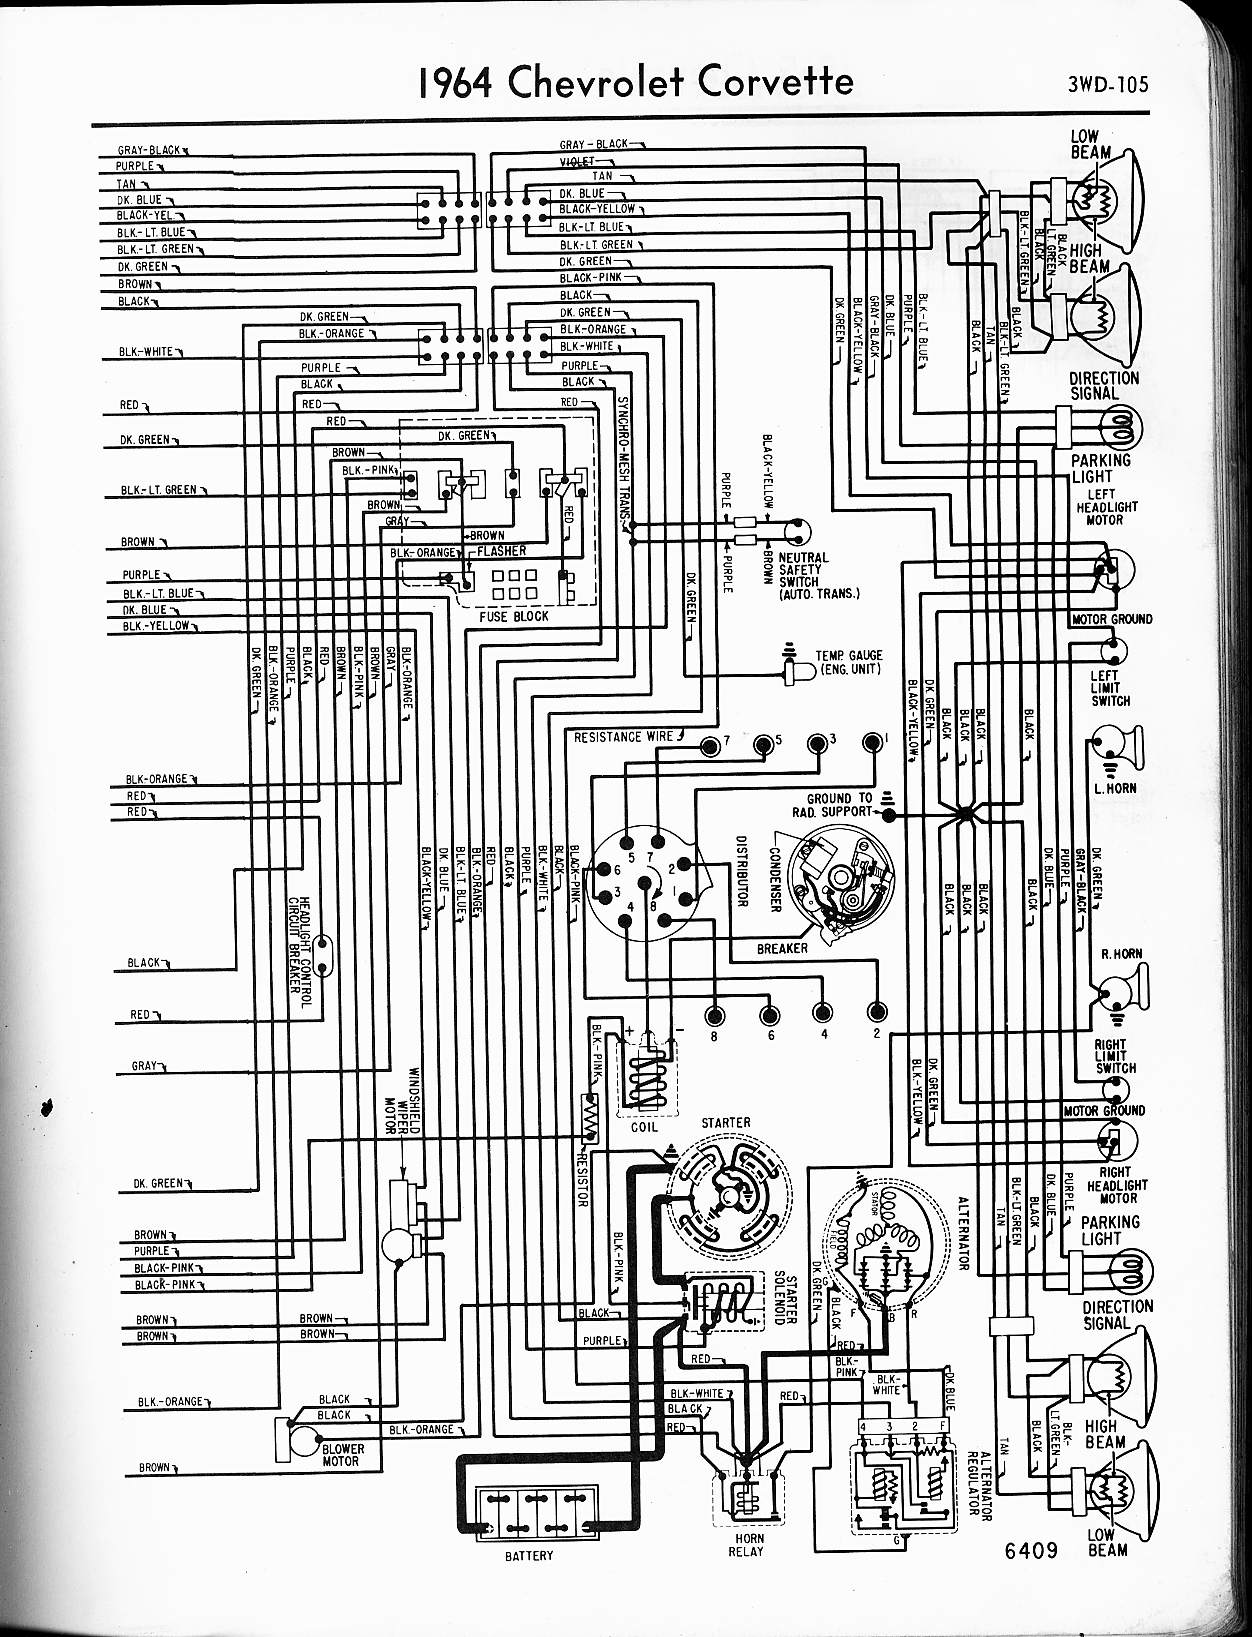 MWireChev64_3WD 105 57 65 chevy wiring diagrams 1960 corvette wiring diagram at fashall.co